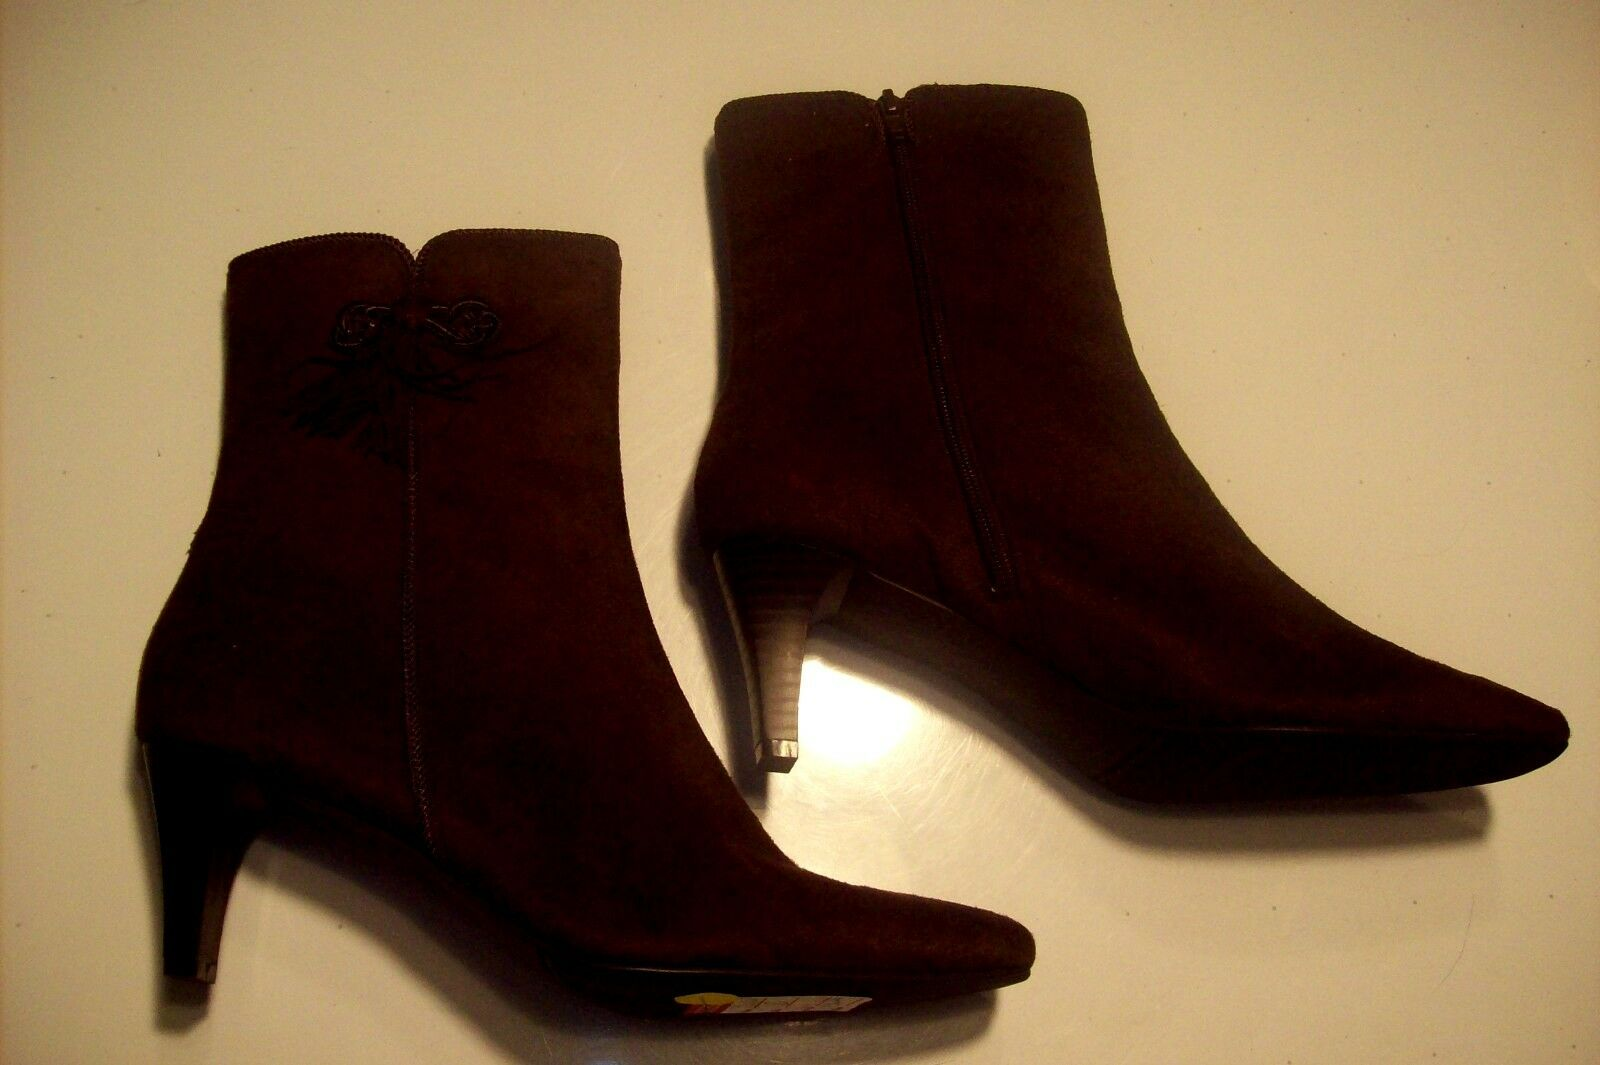 NEW Studio Works Gable Brown Faux Suede Ankle Boots shoes Size 10 @ cLOSeT